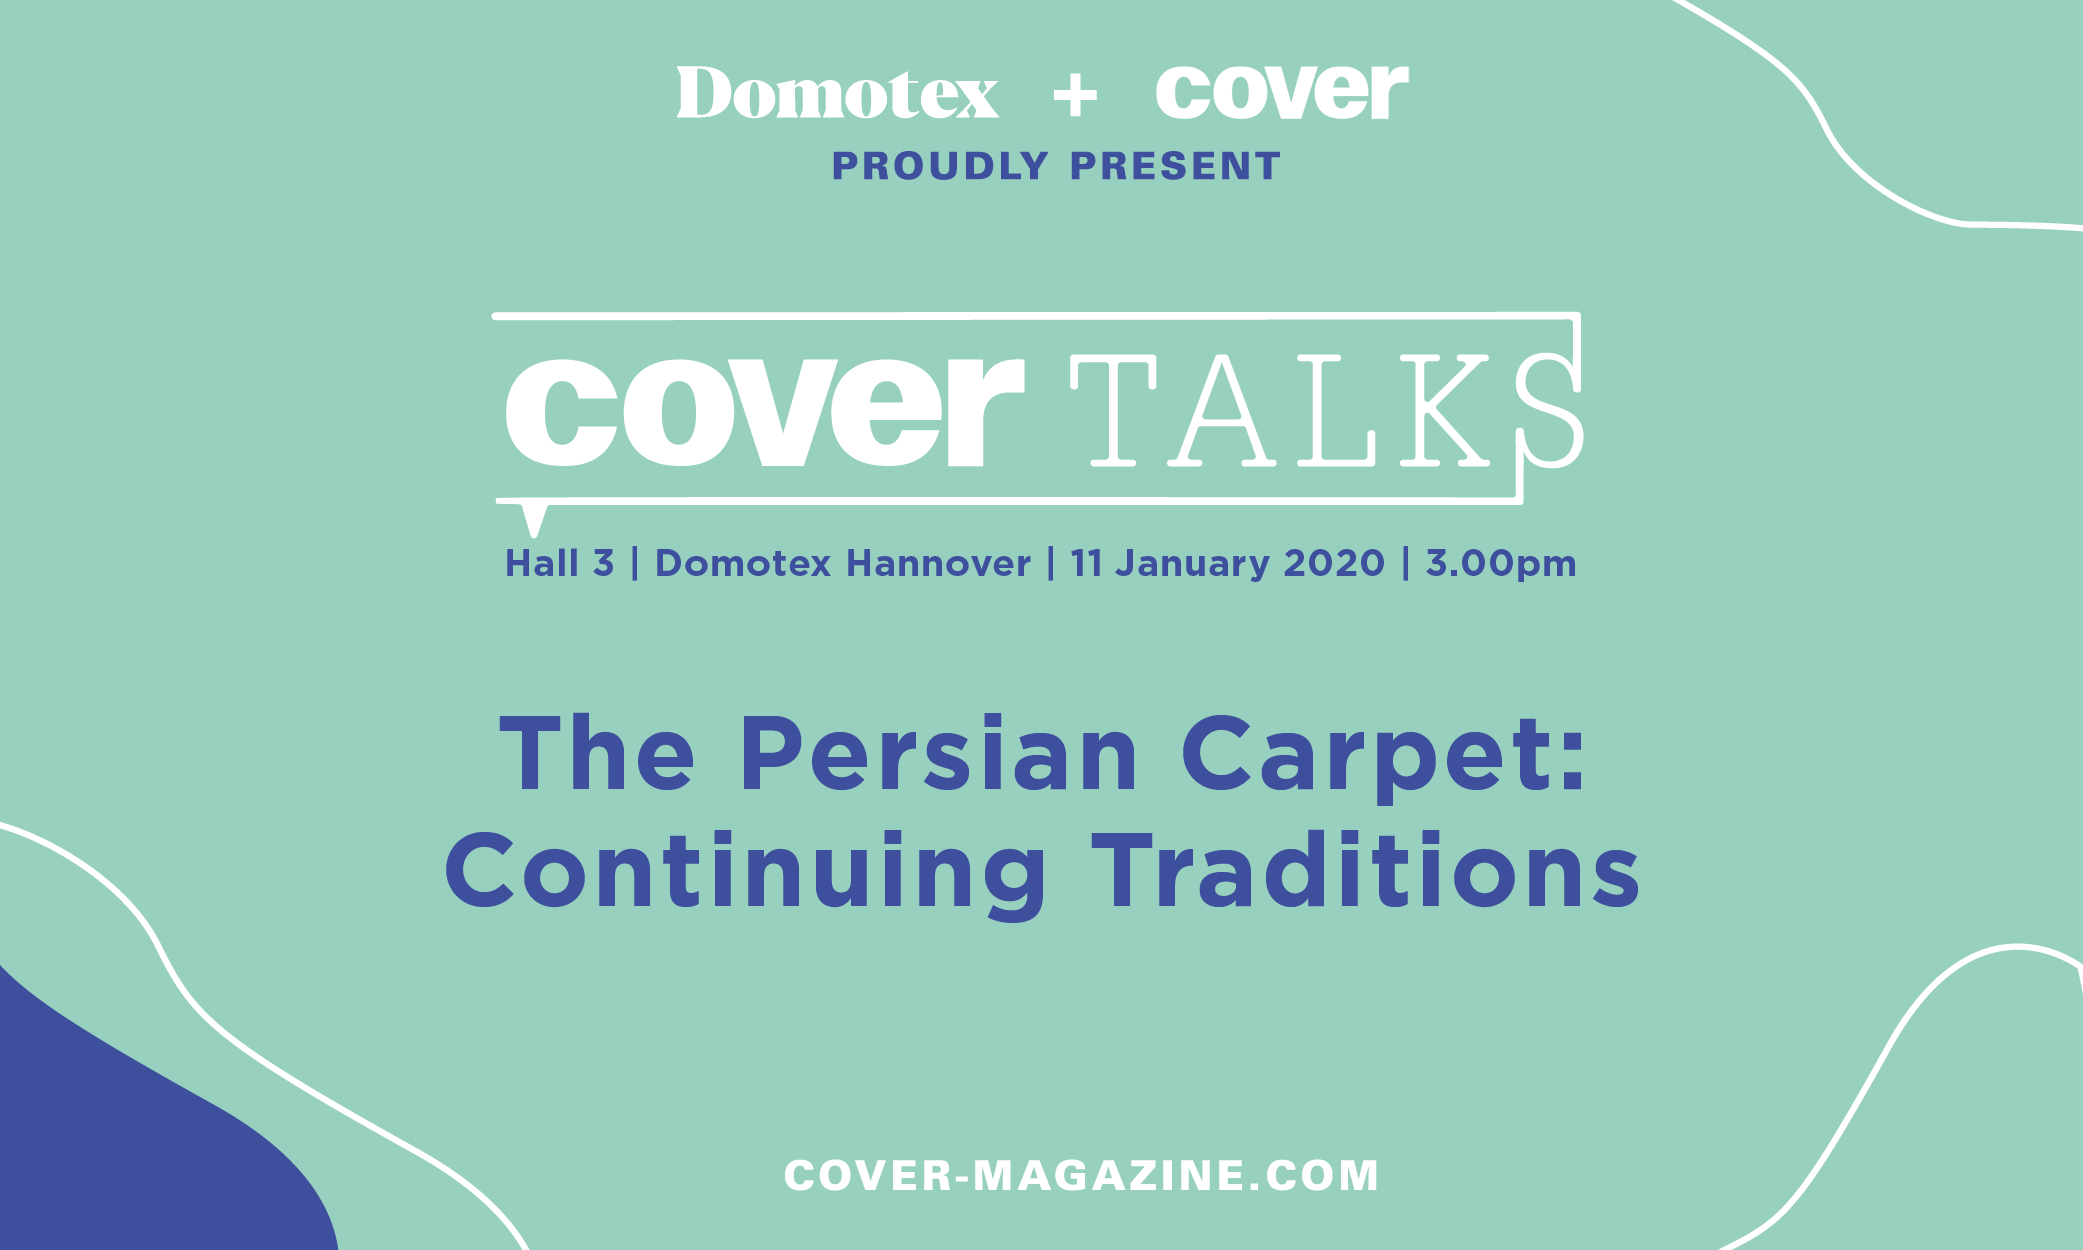 The Persian Carpet: Continuing Traditions, Saturday 11 January, 3.00pm